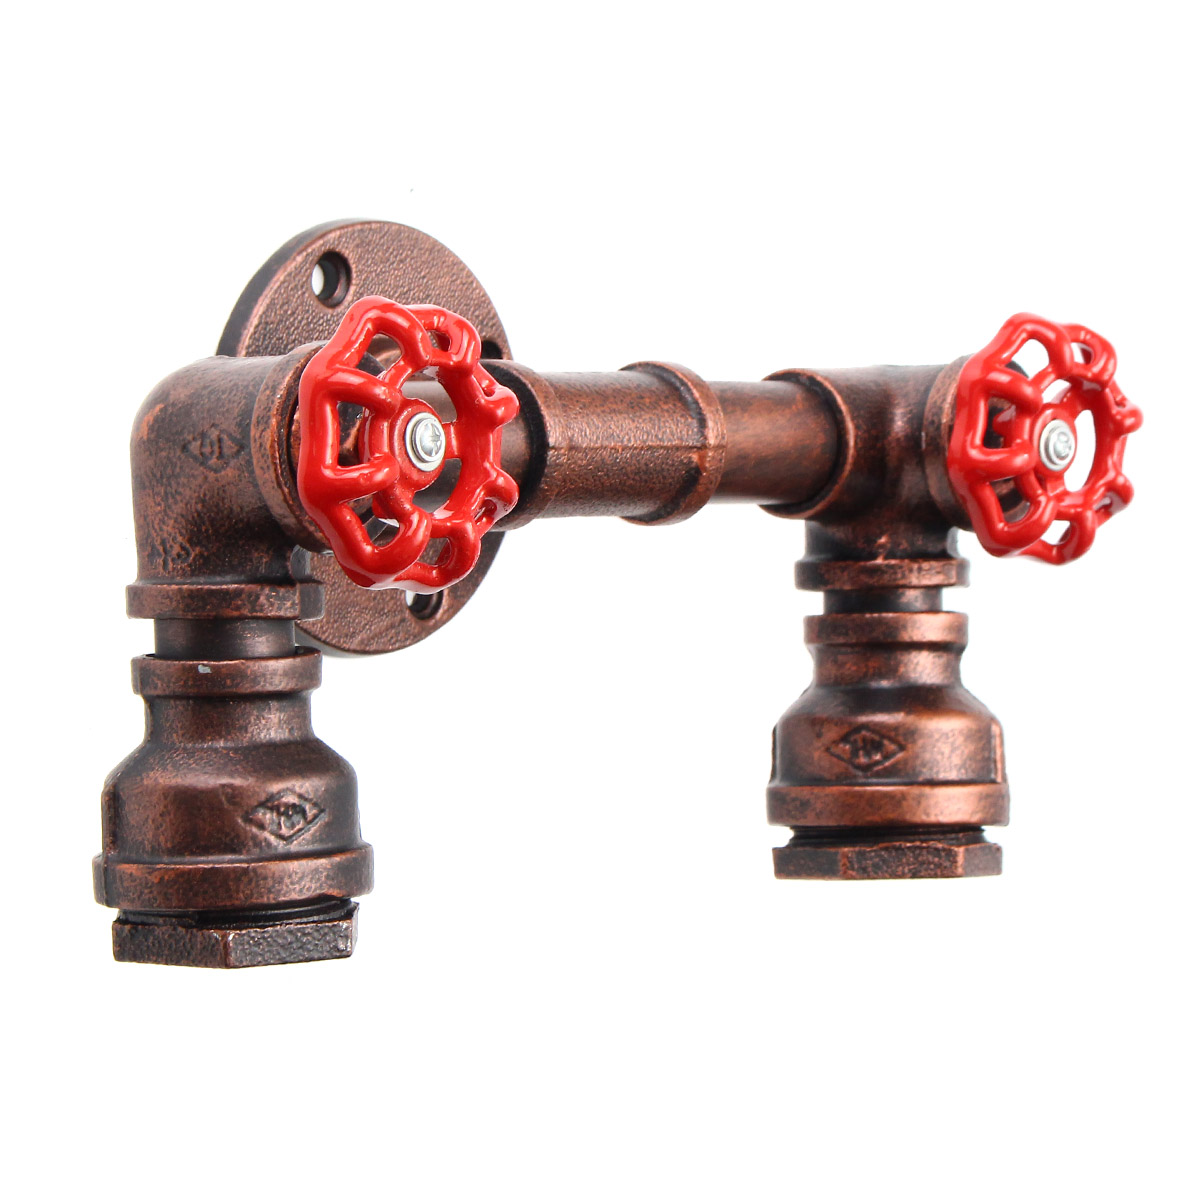 Iron Pipe Light Fixture Retro Industrial Steampunk Iron Water Pipe Shape Wall Lamp